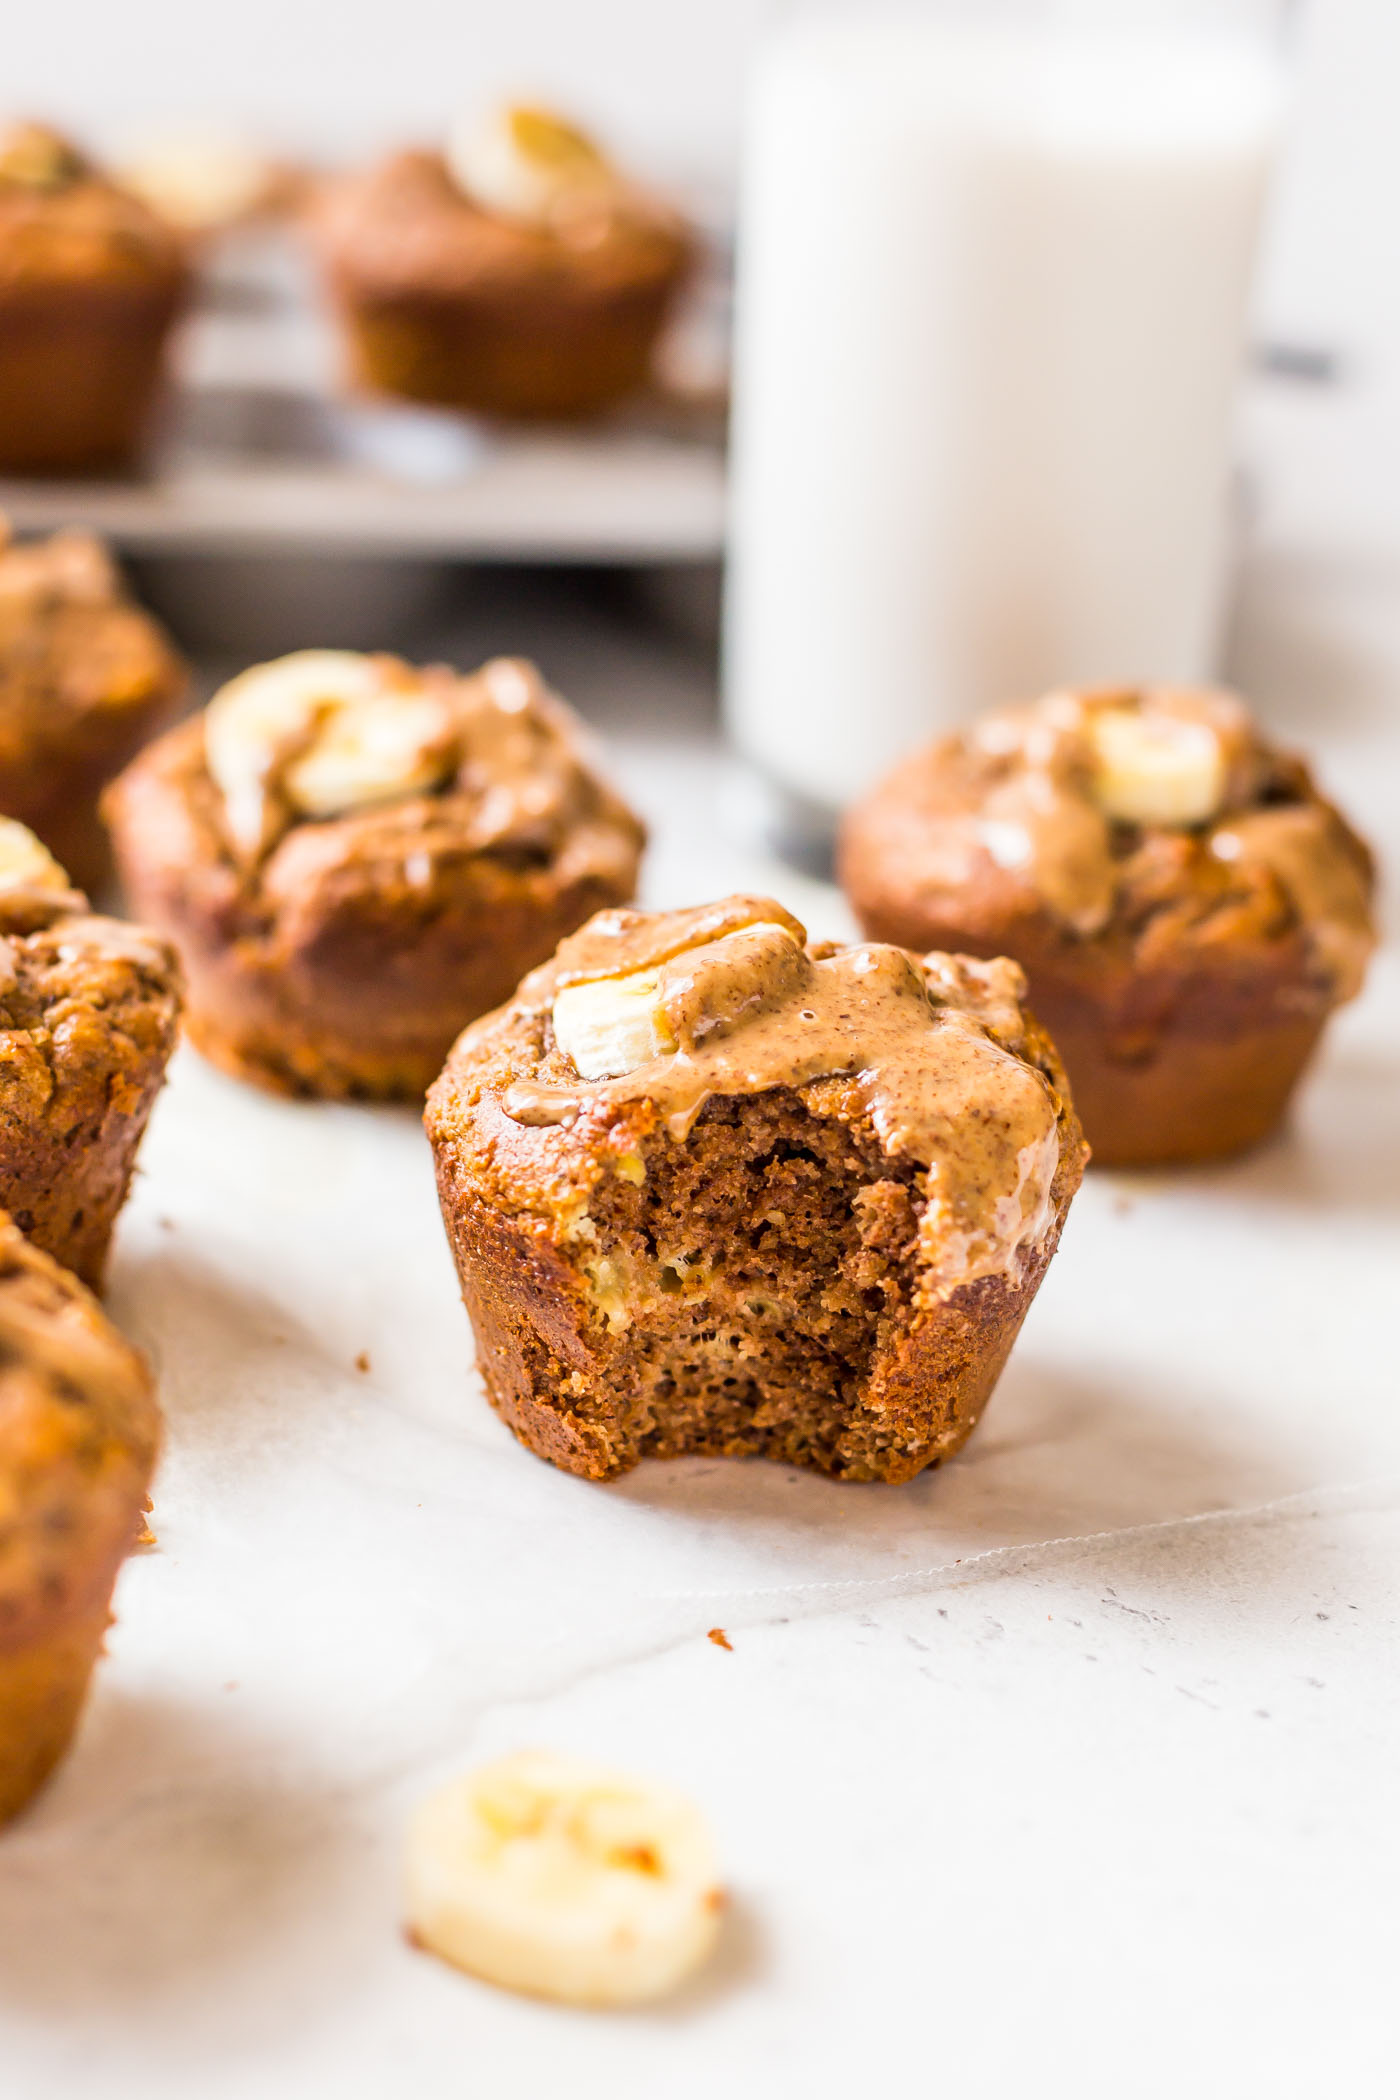 Baked Banana Protein Muffin with a bite bitten out of it on a white background